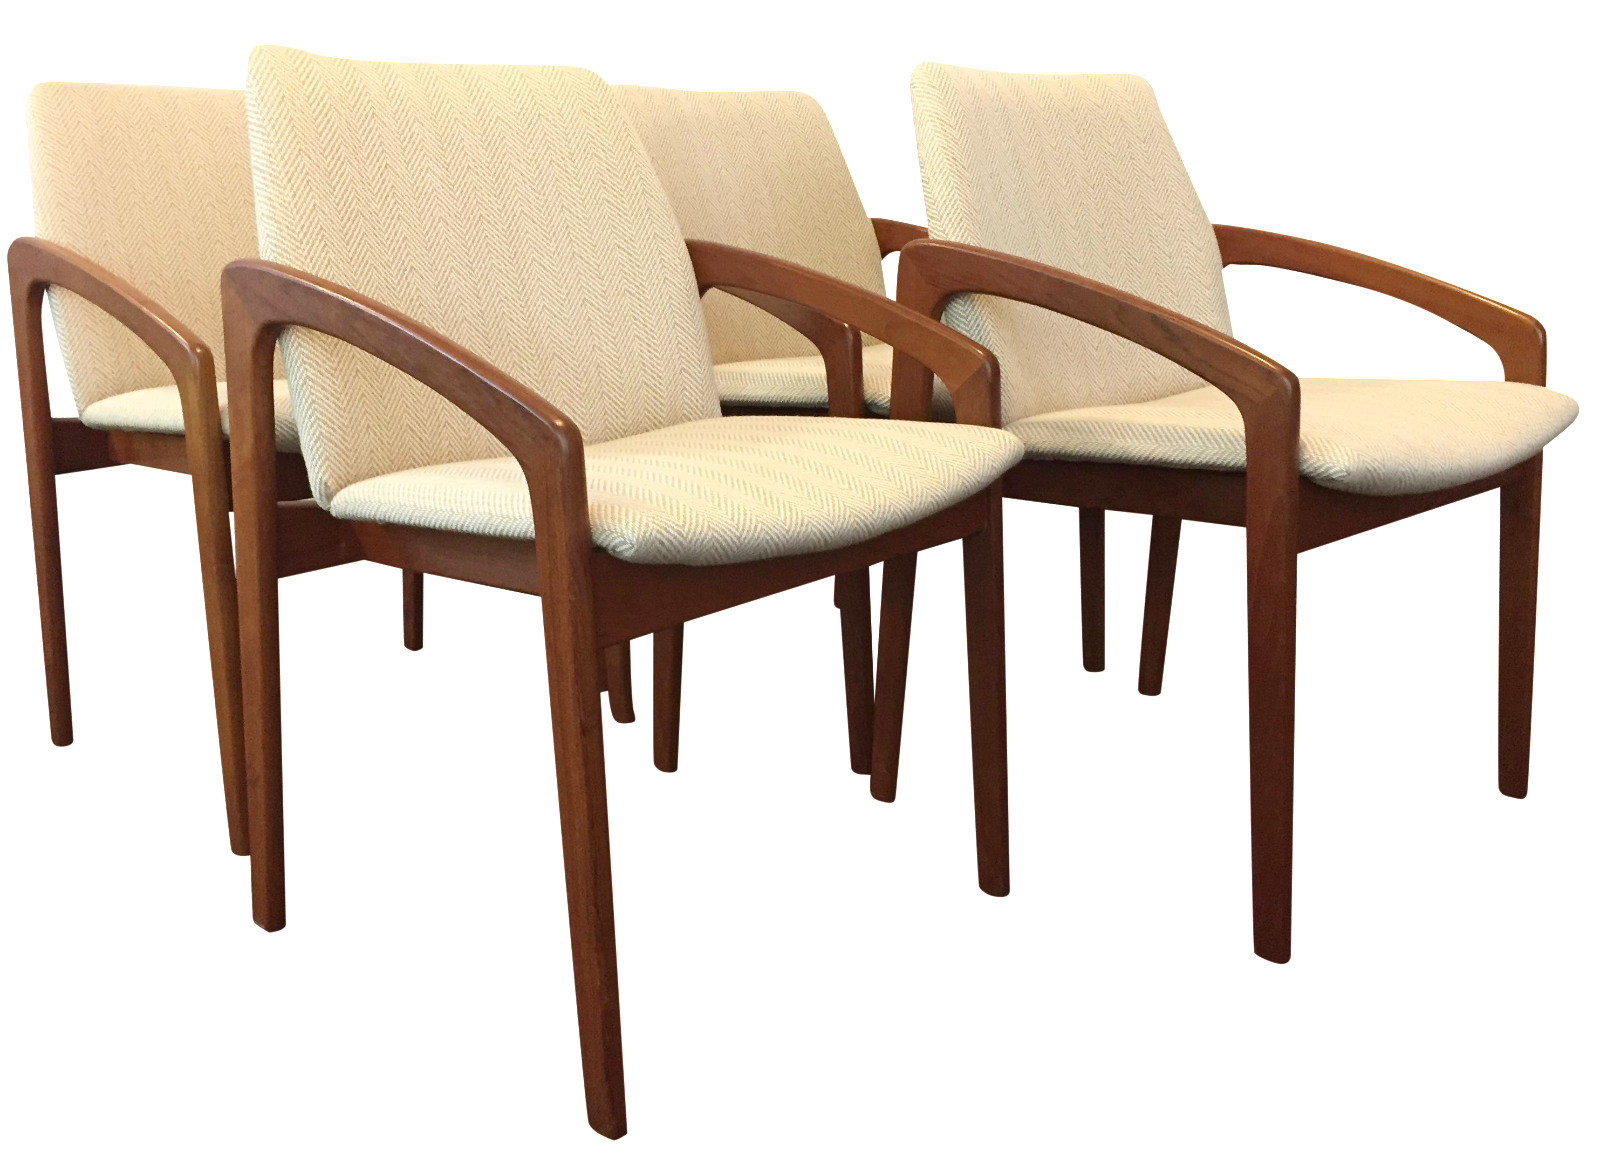 Kai kristiansen dining chairs set of 4 chairish - Kai kristiansen chairs ...